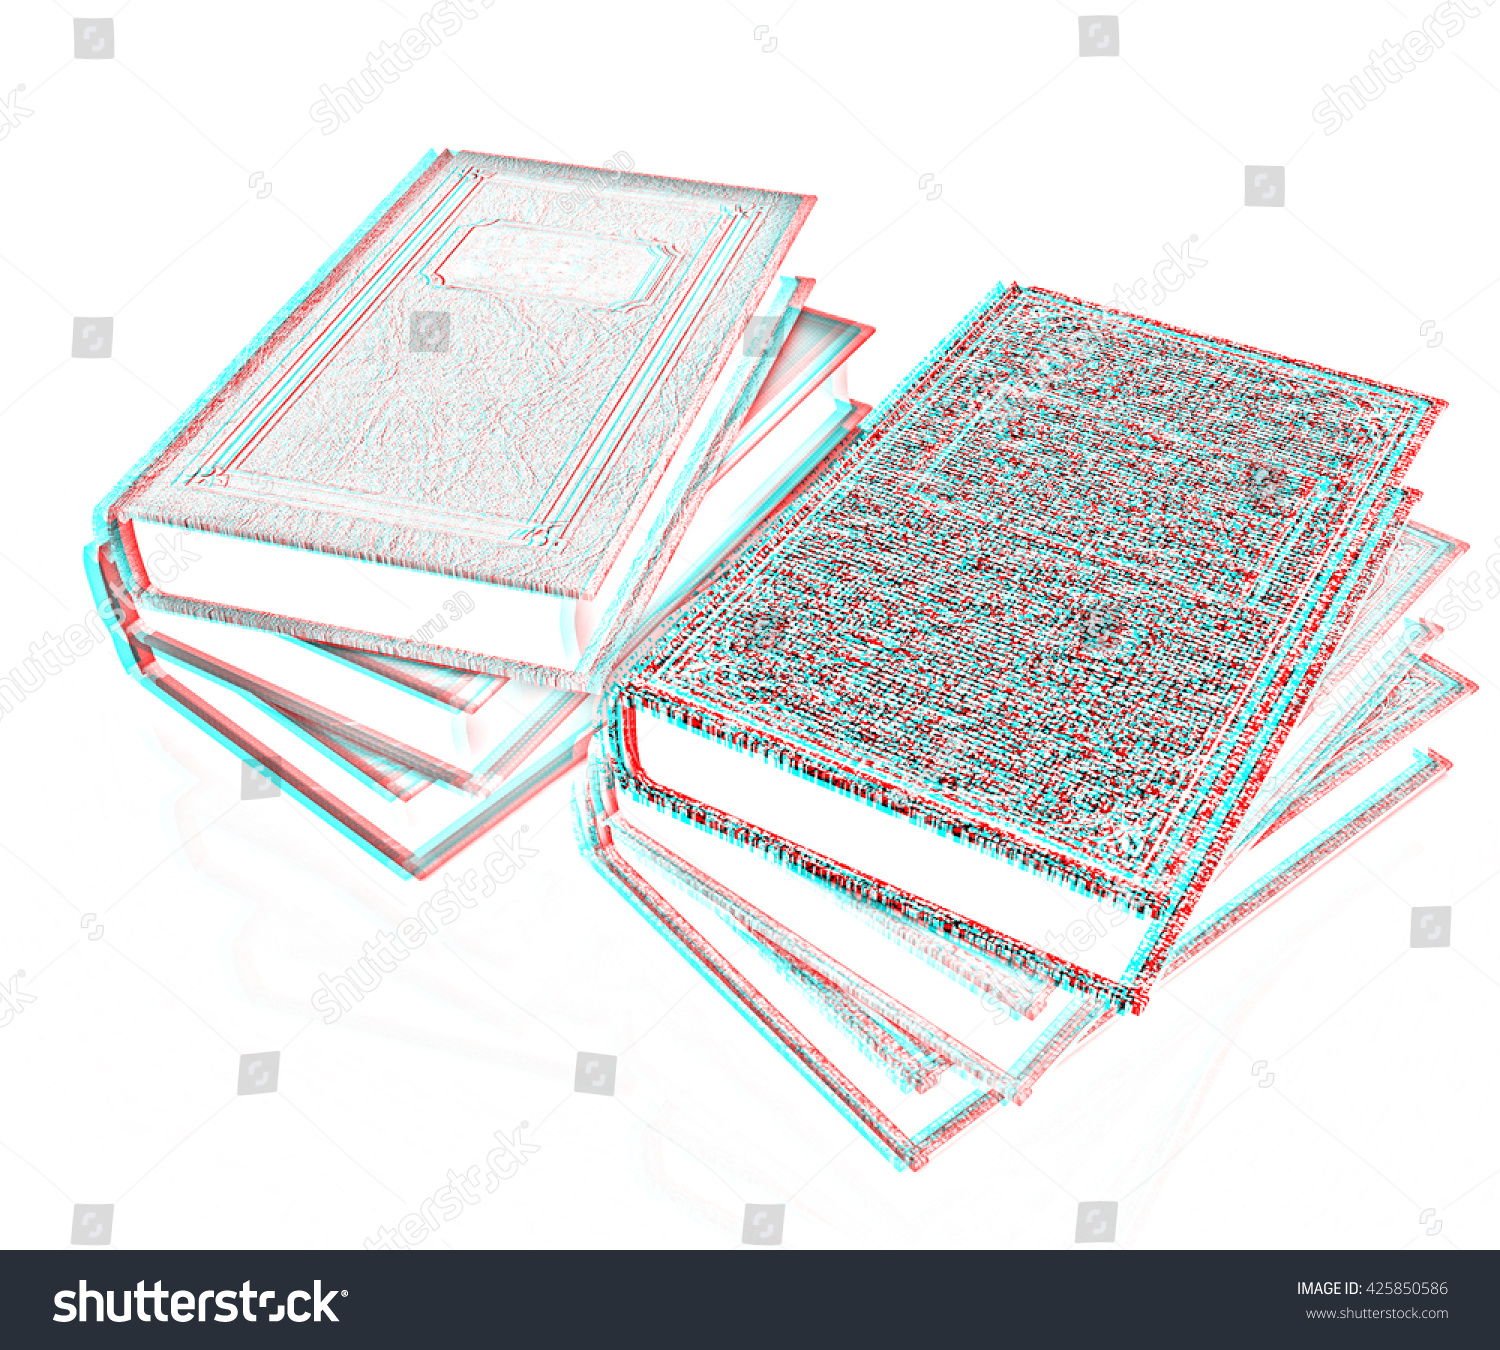 The stack of books on a white background pencil drawing ez canvas